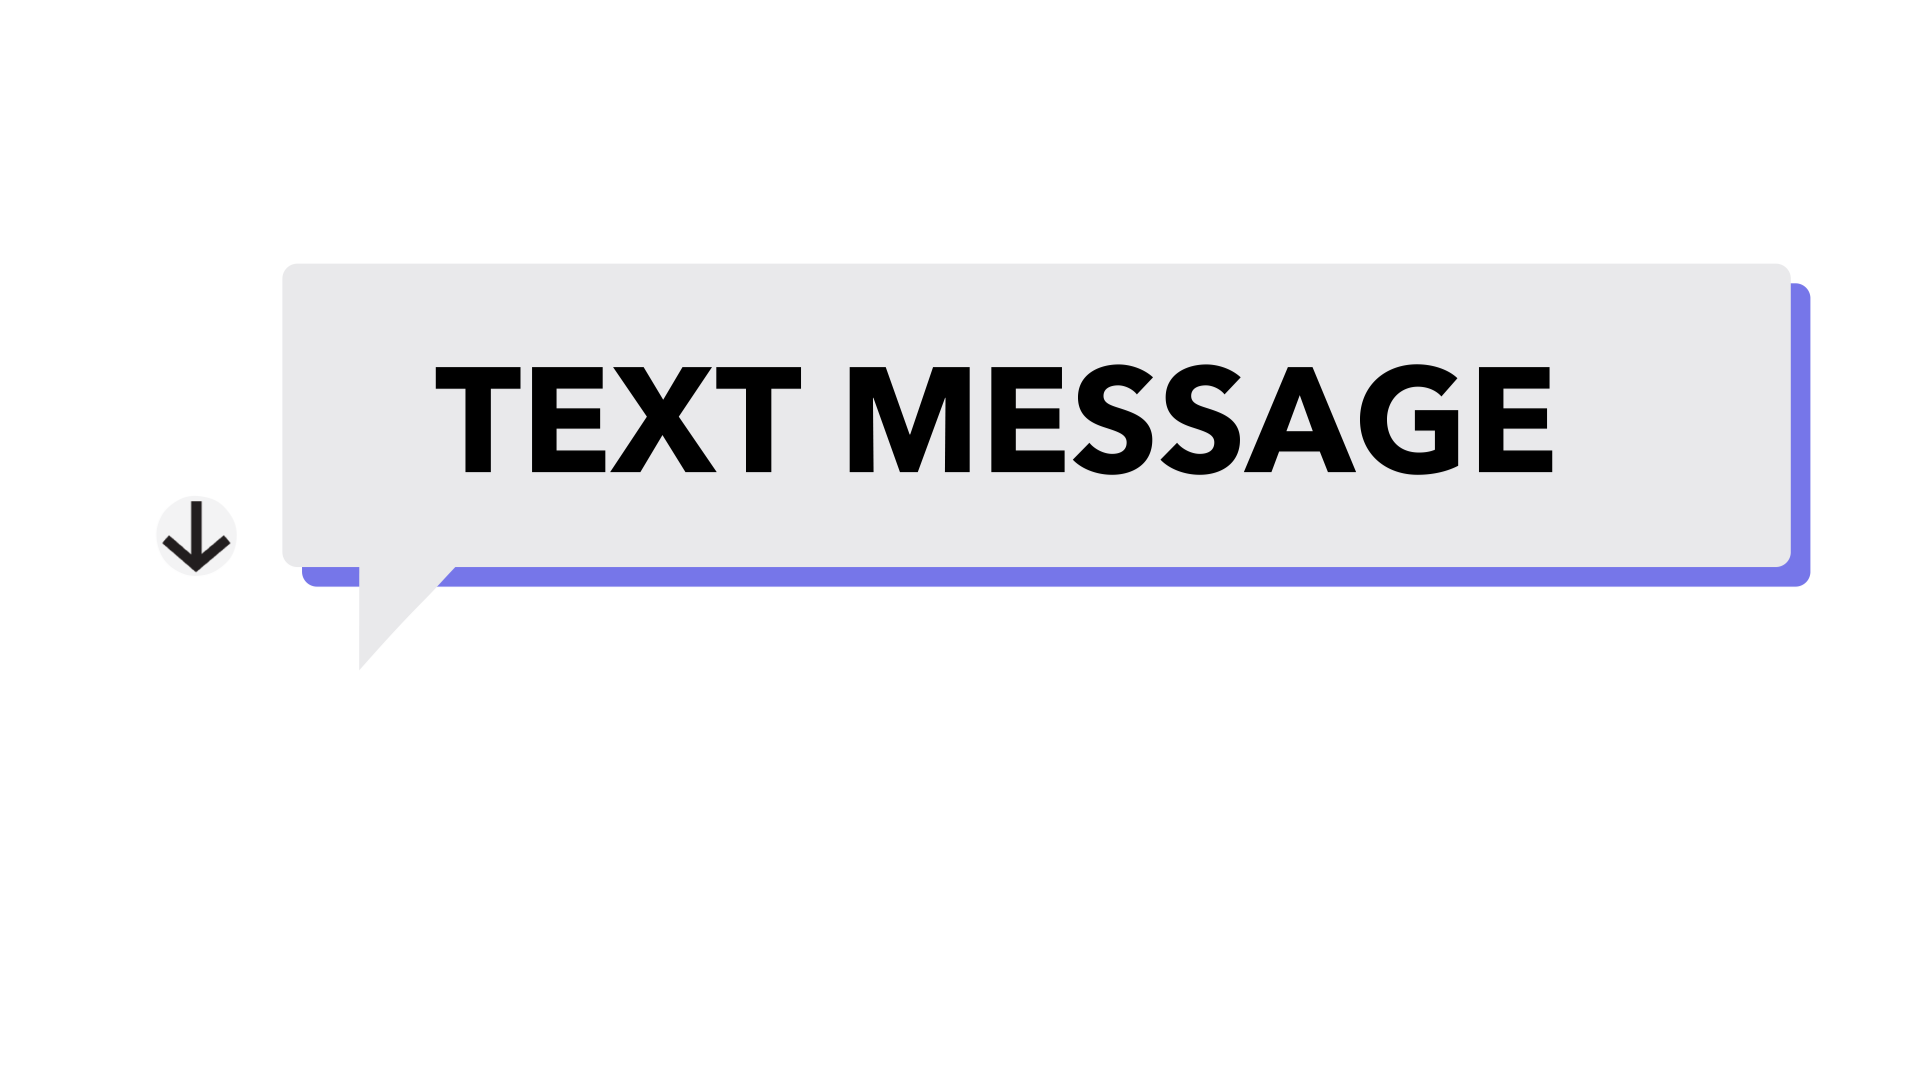 text messages vol.2 - style 1